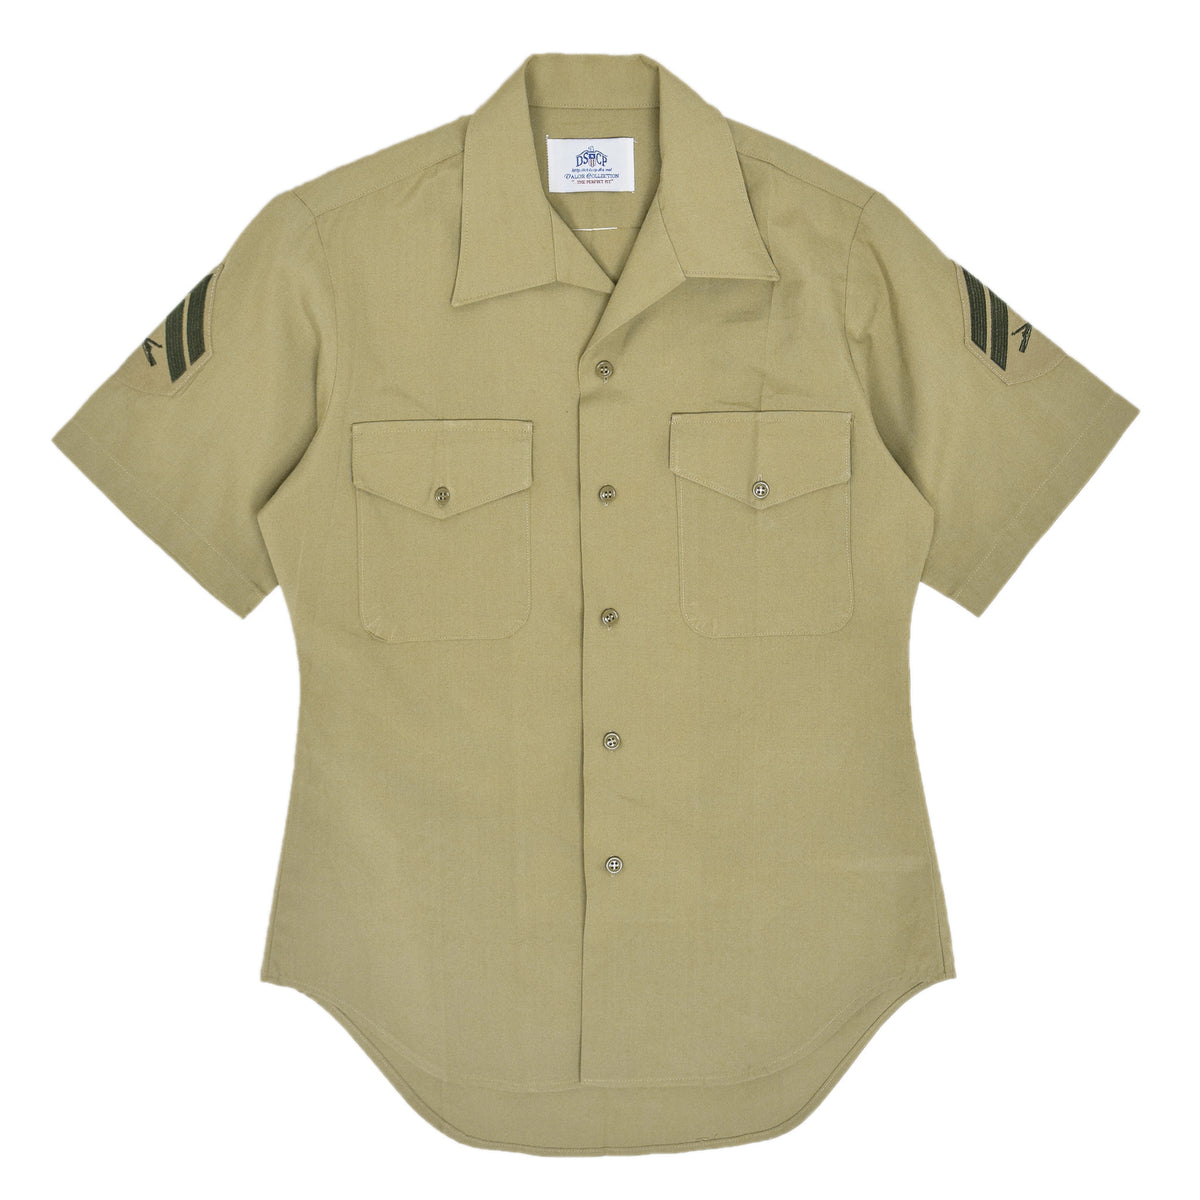 US Army DSCP Short Sleeve Khaki Cotton Military Field Shirt S front